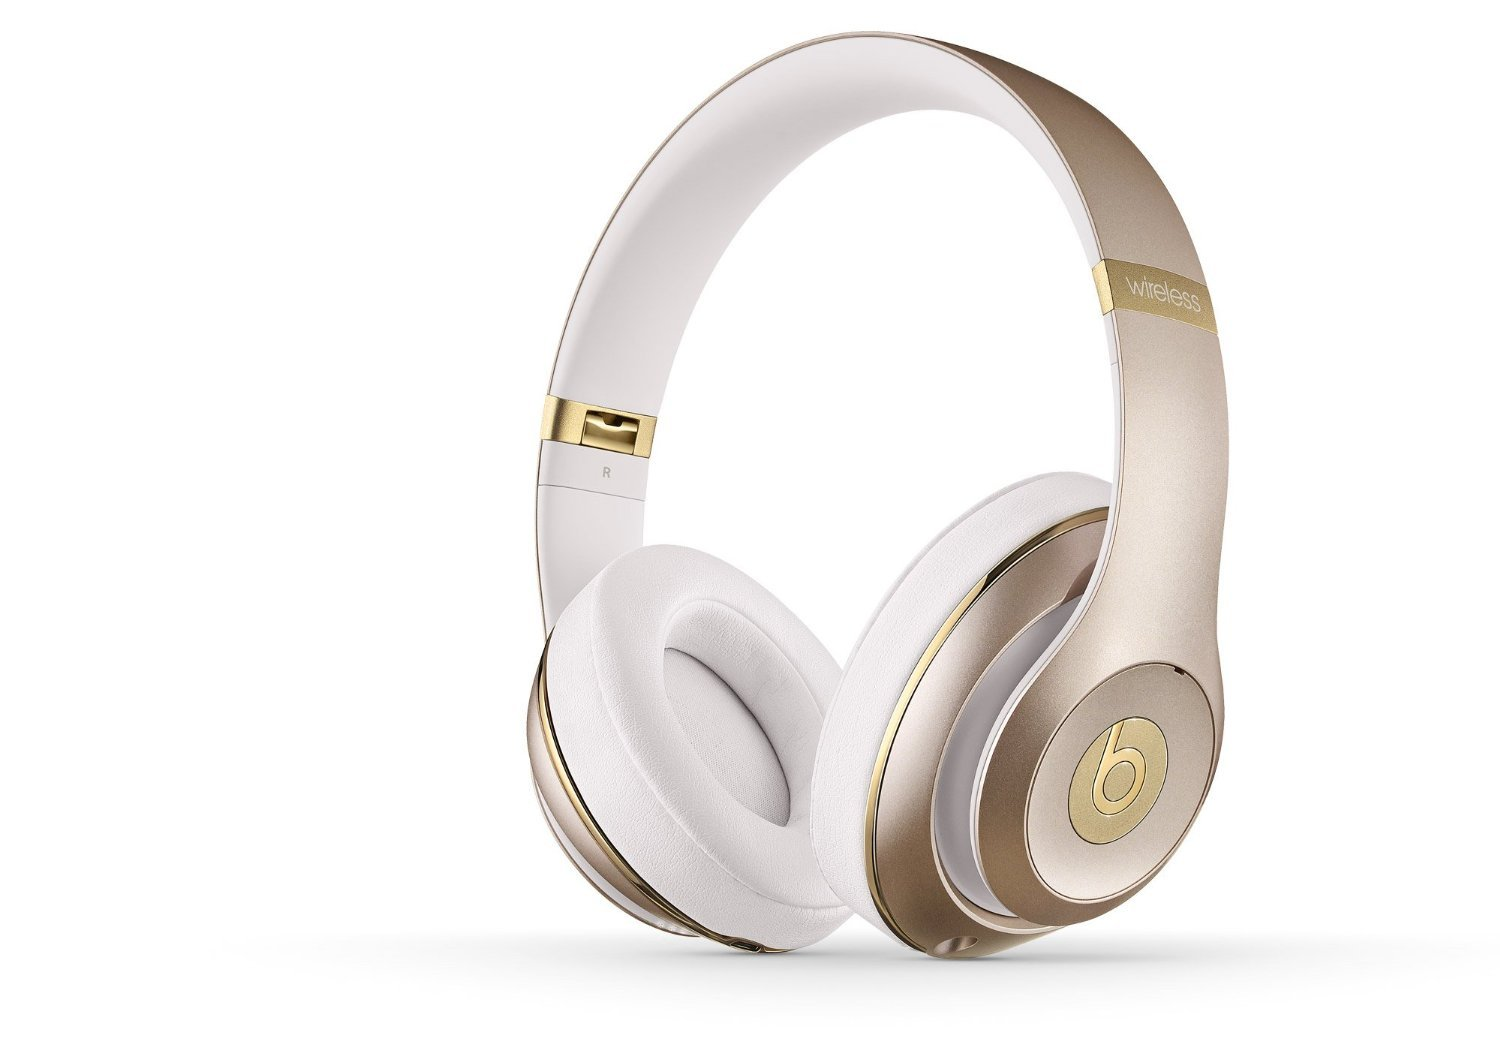 beats studio wireless over ear headphone gold limited edition new studio 2 0 headphones. Black Bedroom Furniture Sets. Home Design Ideas